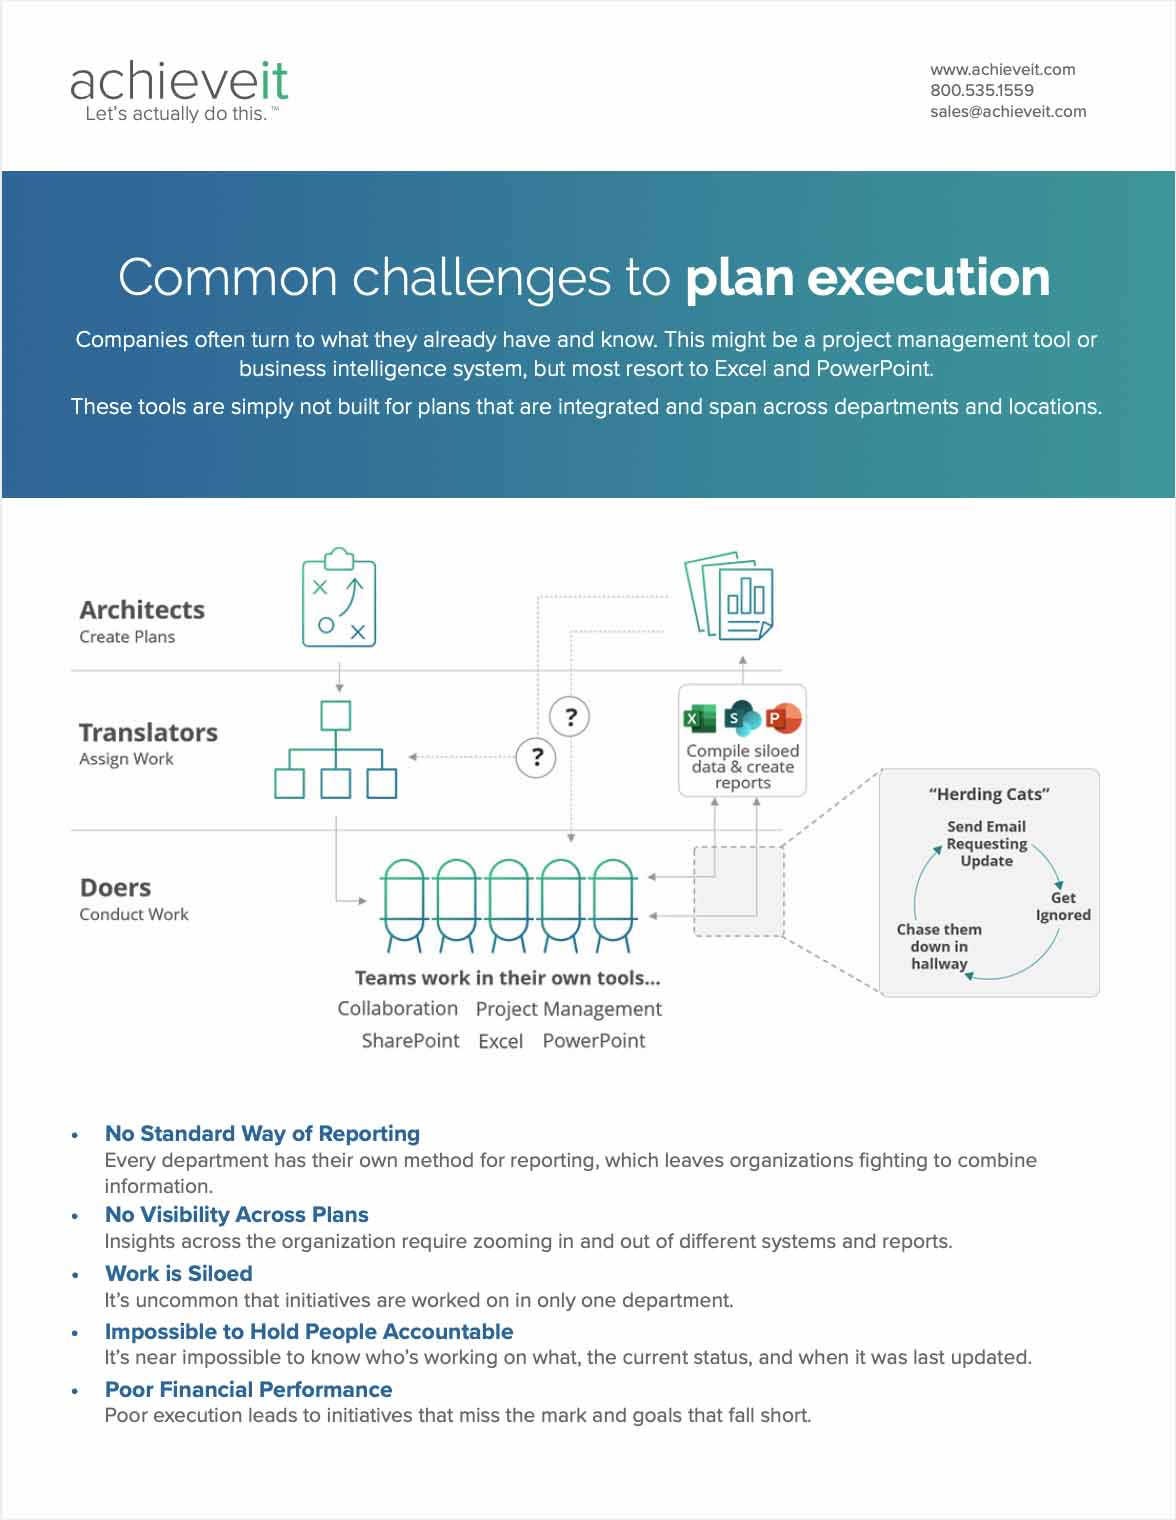 Common Challenges to Plan Execution